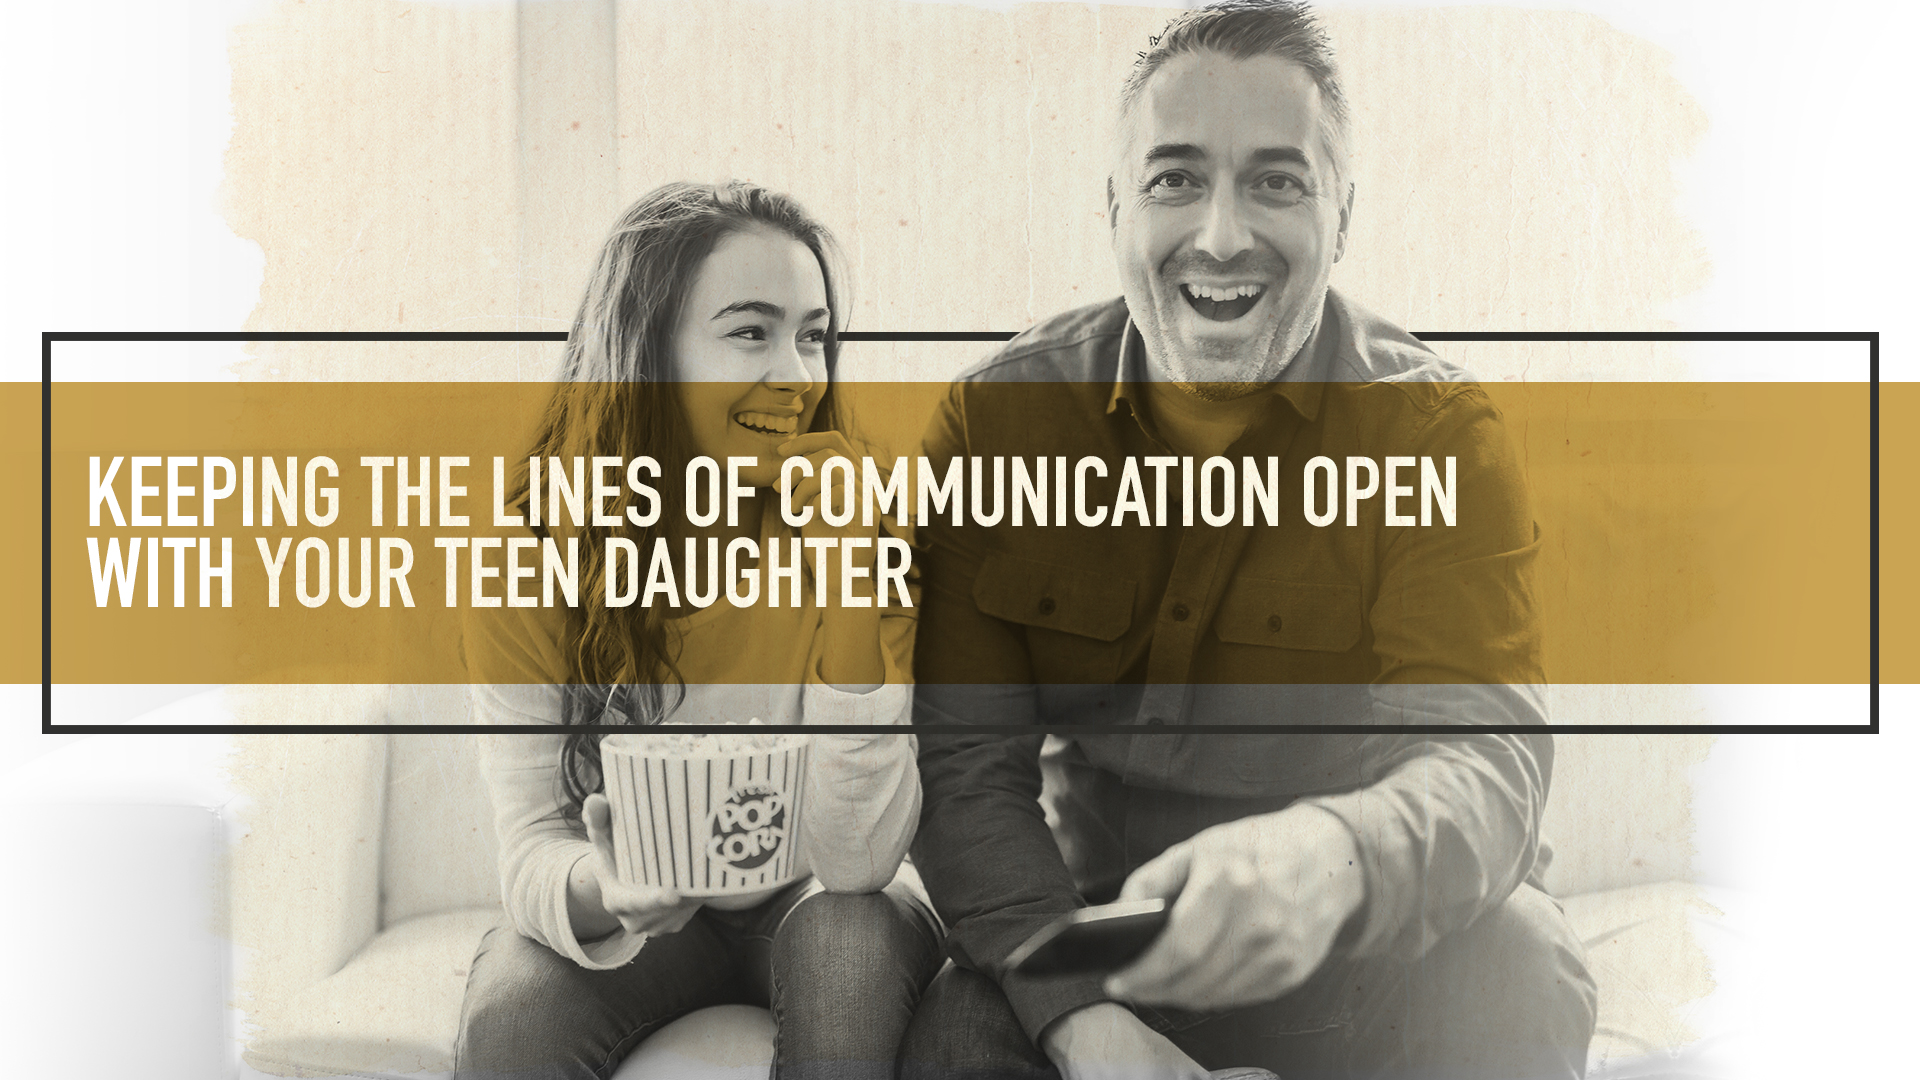 KEEPING THE LINES OF COMMUNICATION OPEN WITH YOUR TEEN DAUGHTER